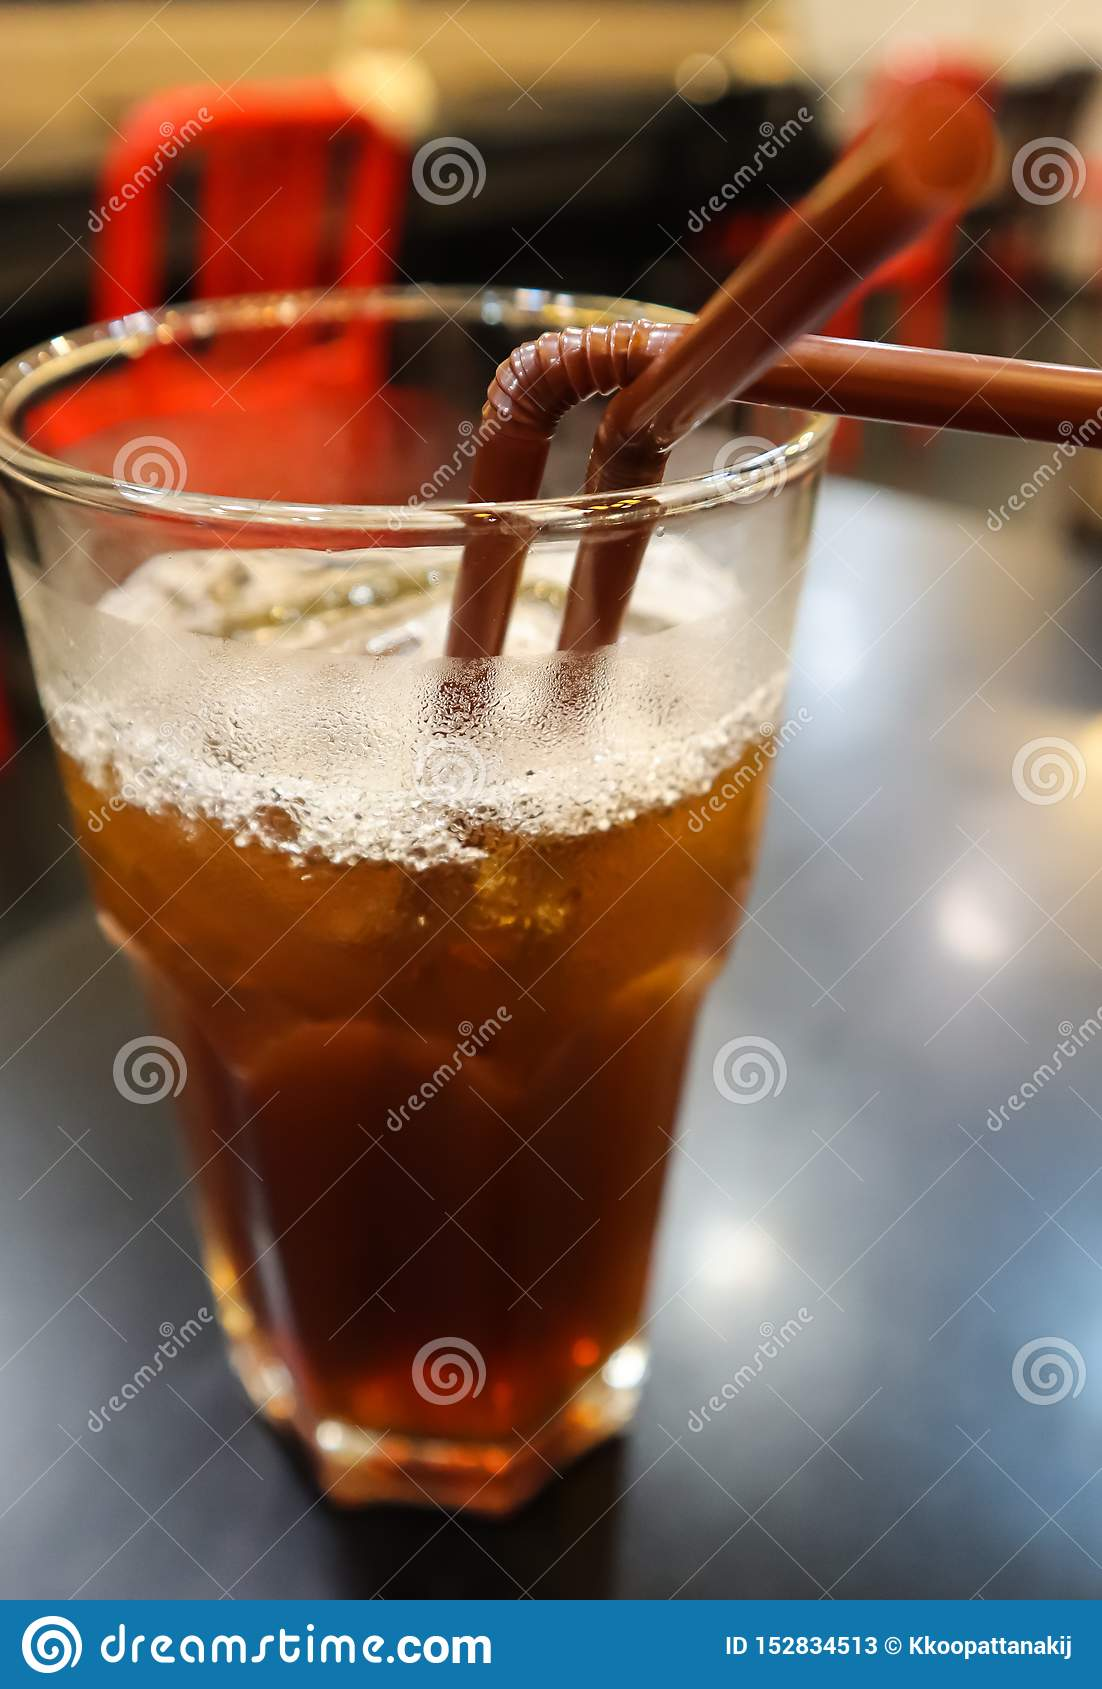 Glass of ice lemon tea with two brown straws on the black table in the restaurant. One glass for two, together. Concept image